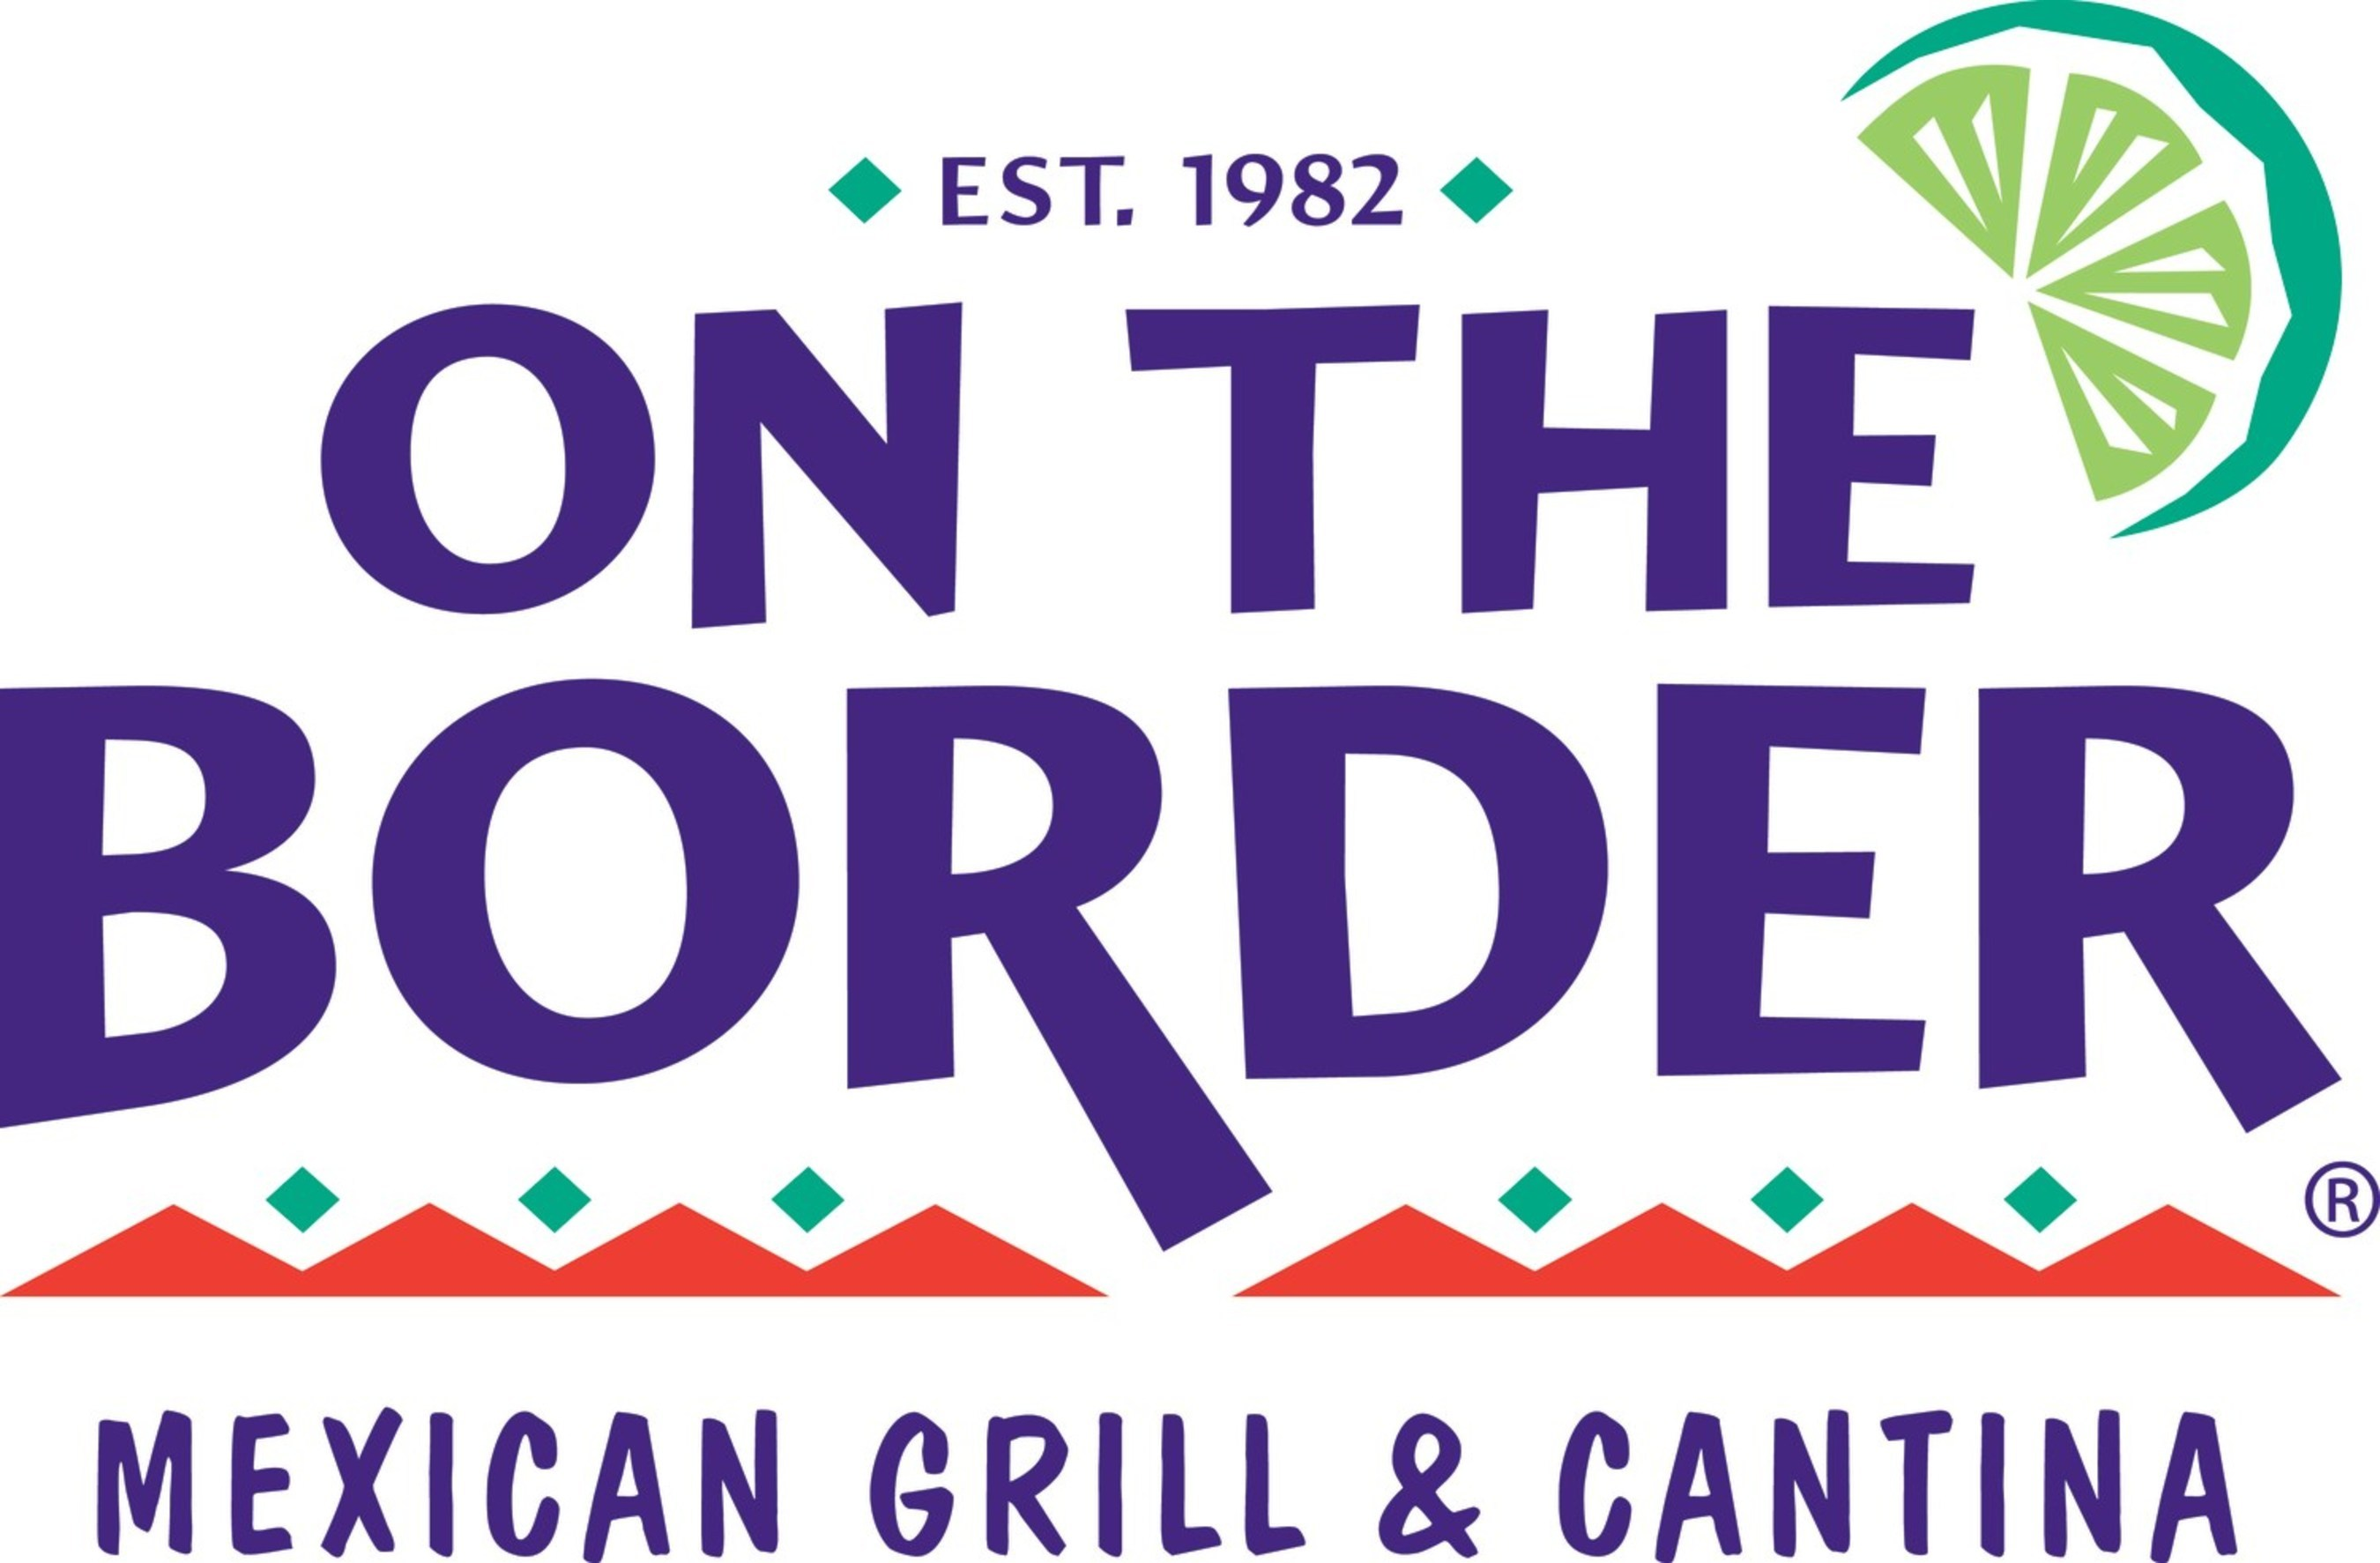 On The Border Mexican Grill & Cantina® will be contributing to the Aflac Cancer and Blood Disorders Center of the Children's Healthcare of Atlanta throughout the month of November.